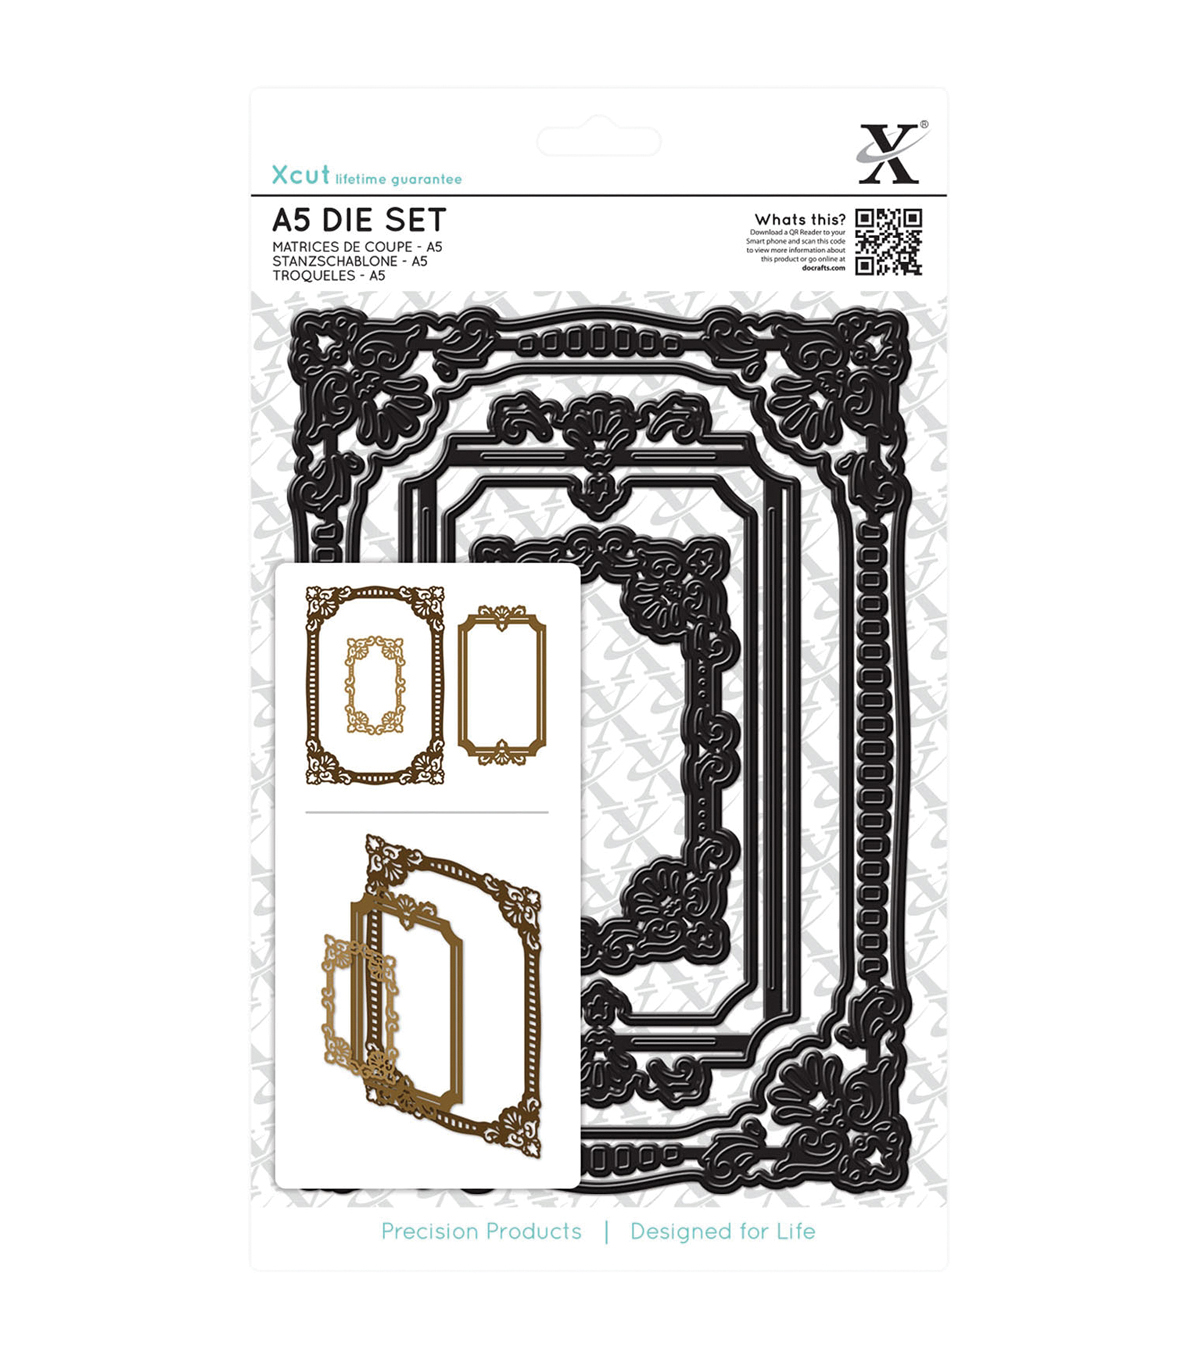 Xcut Ornate Frames Square A5 Die Set